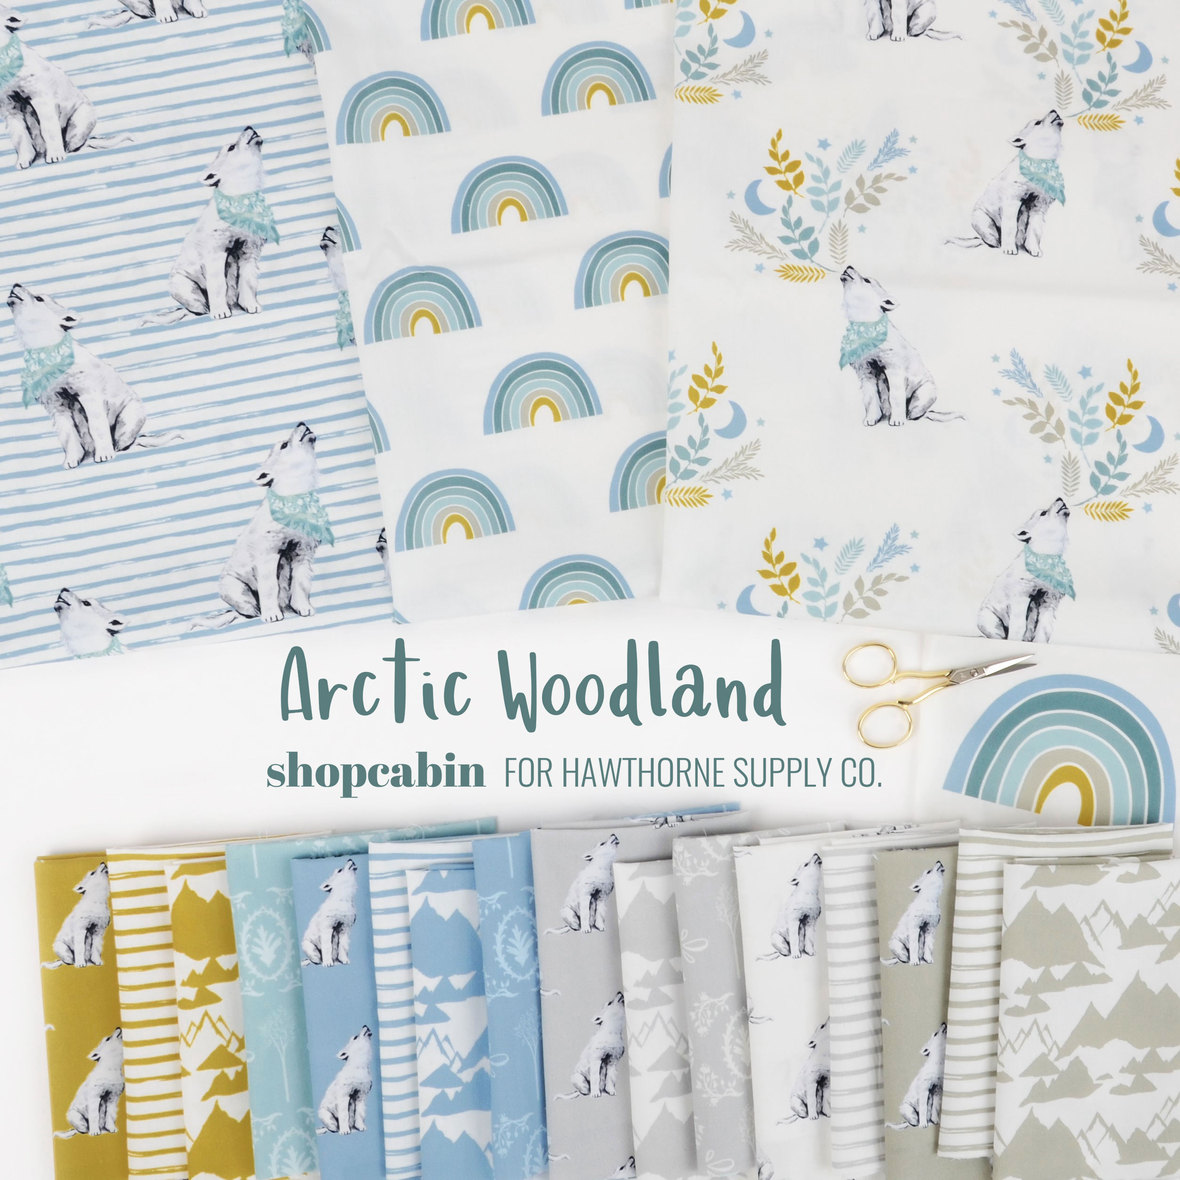 Arctic-Woodland-Fabric-Shopcabin-for-Hawthorne-Supply-Co.